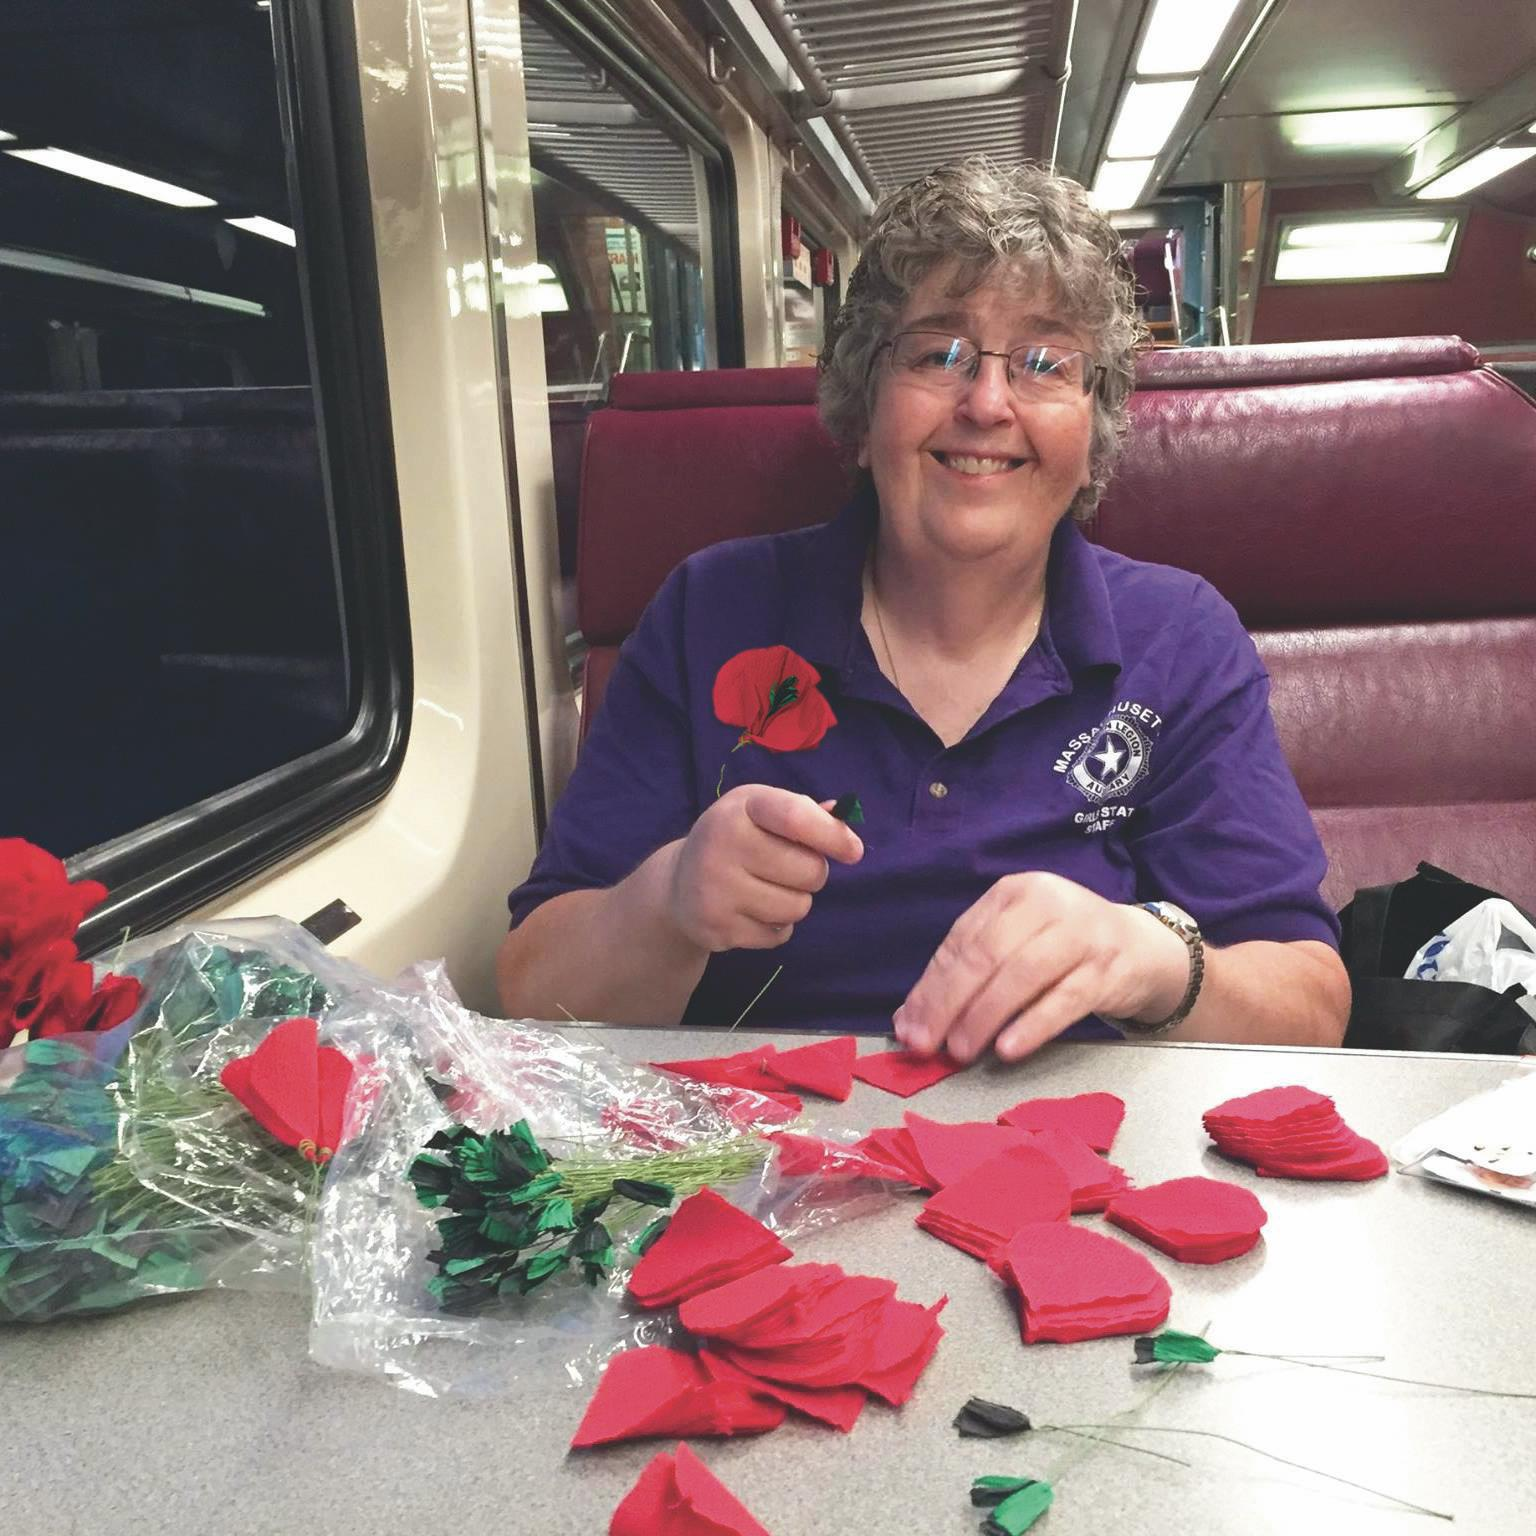 Wearing a poppy supports veterans   Pictured is Ann Fournier making the poppy flowers on the train.   Picture compliments of BrandPoint